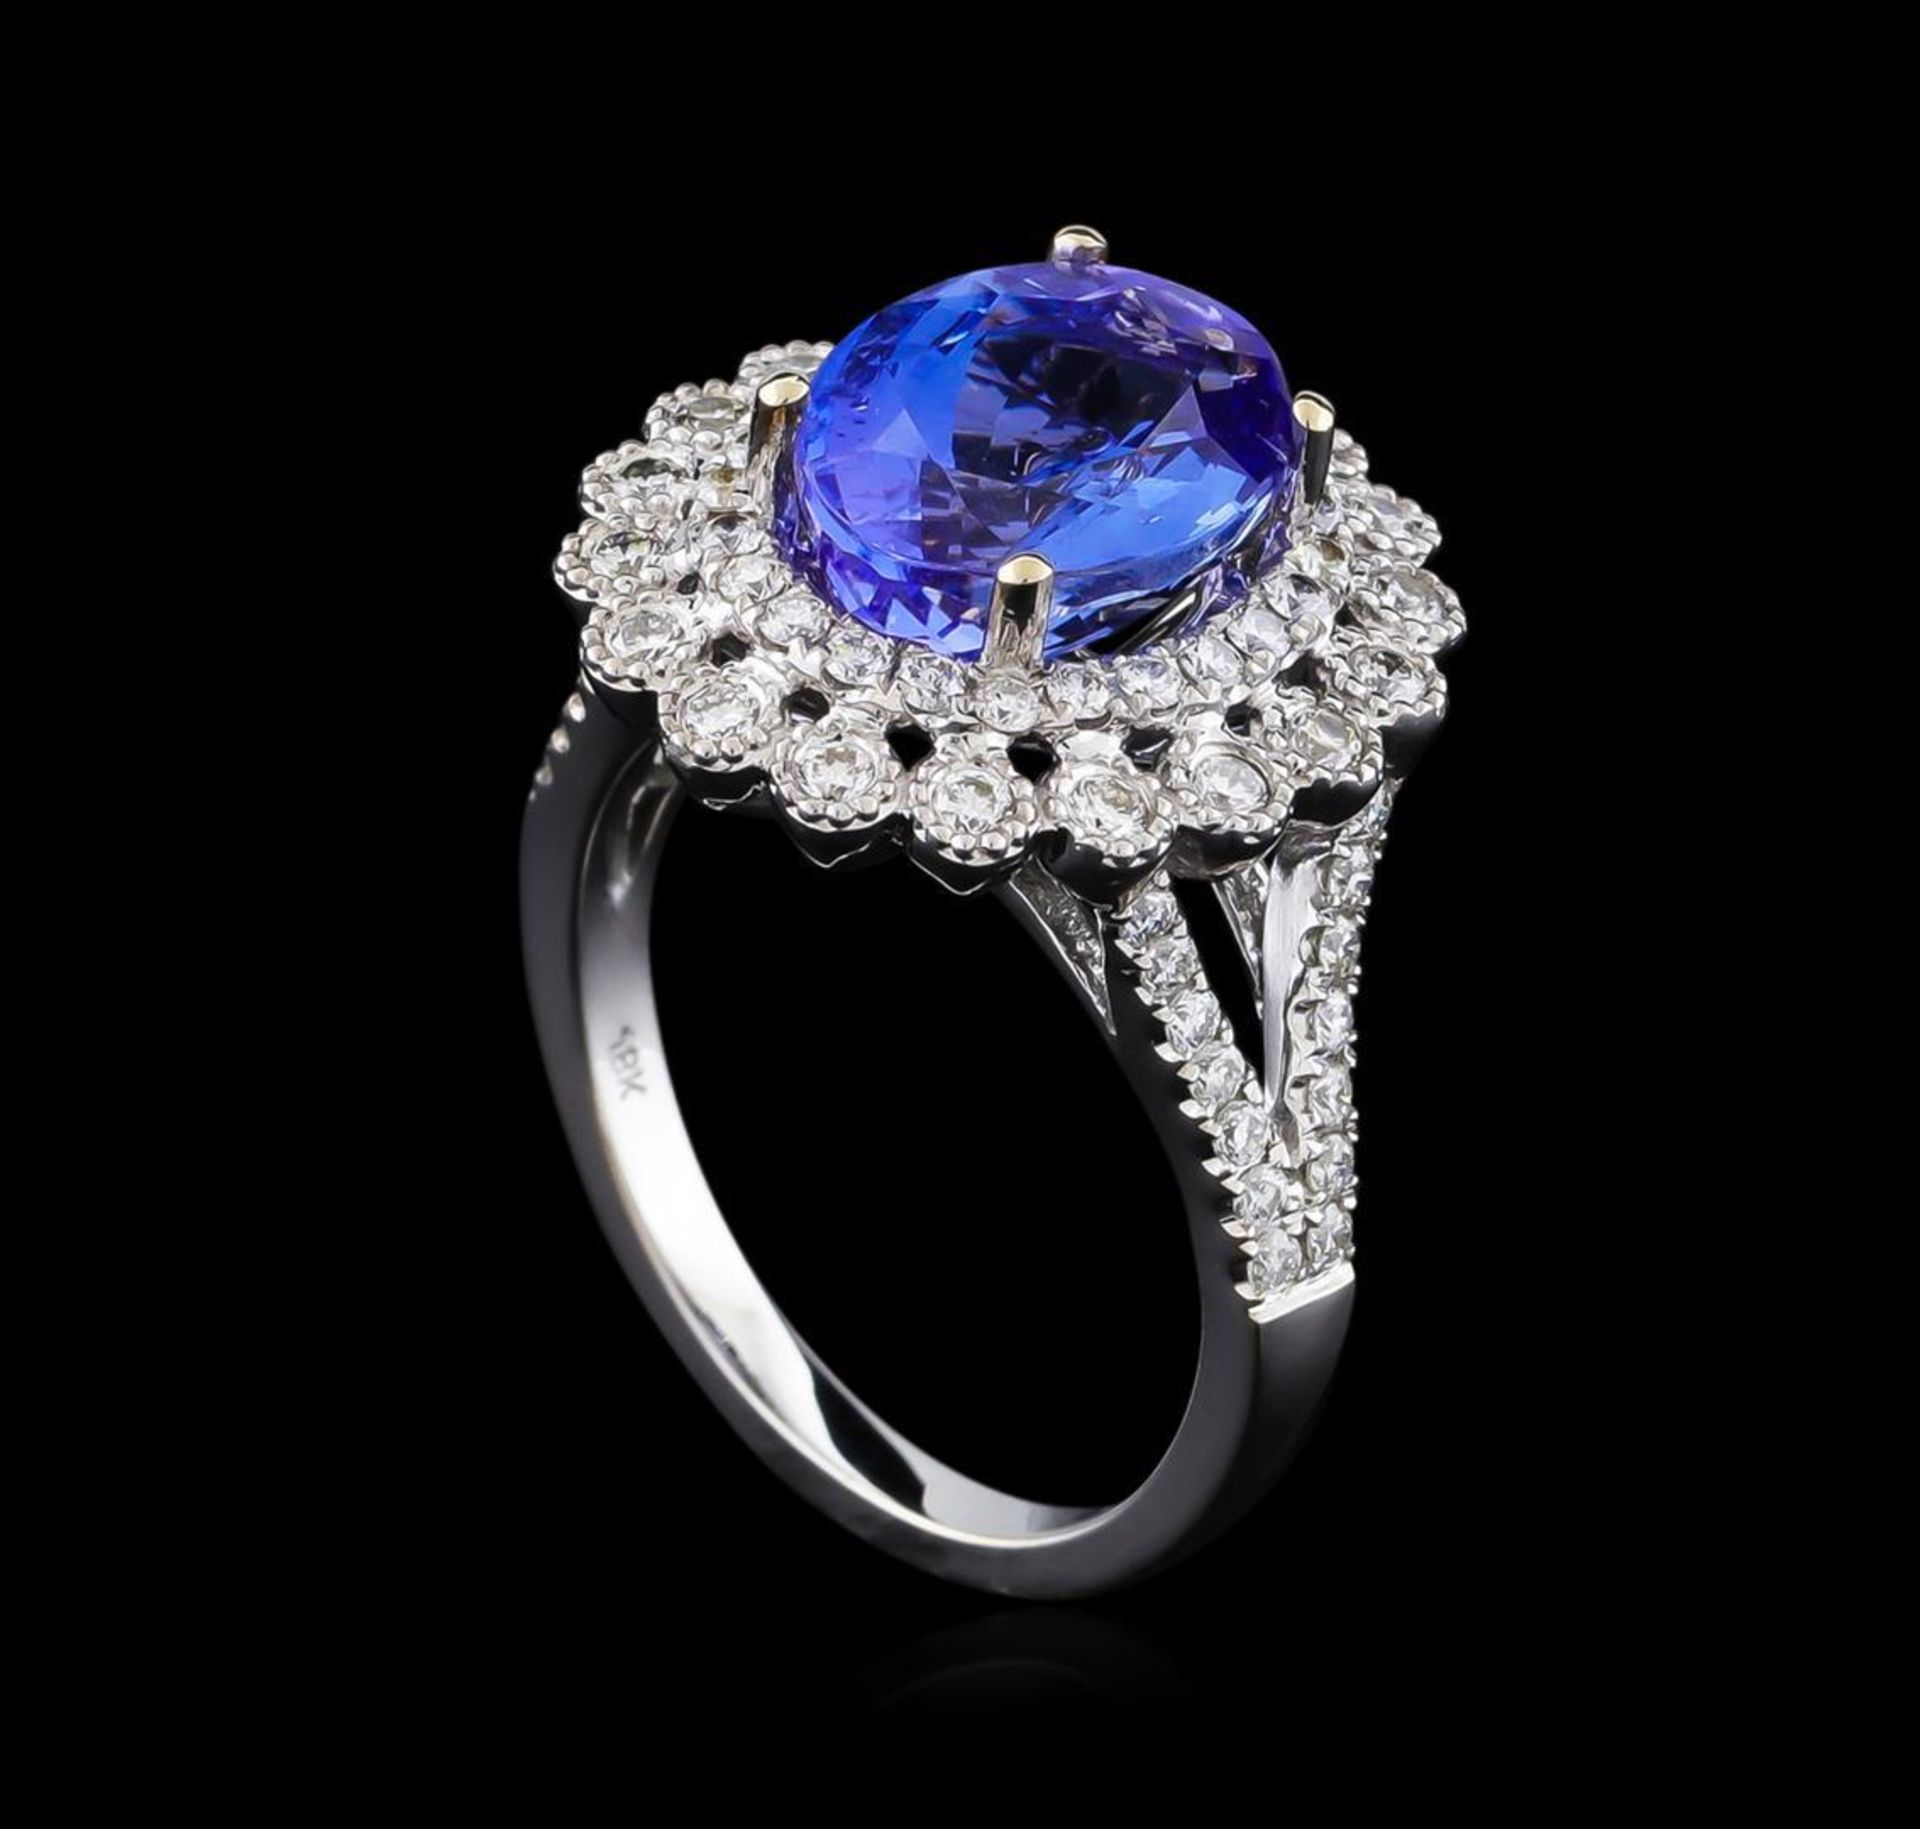 18KT White Gold 3.95 ctw Tanzanite and Diamond Ring - Image 4 of 5